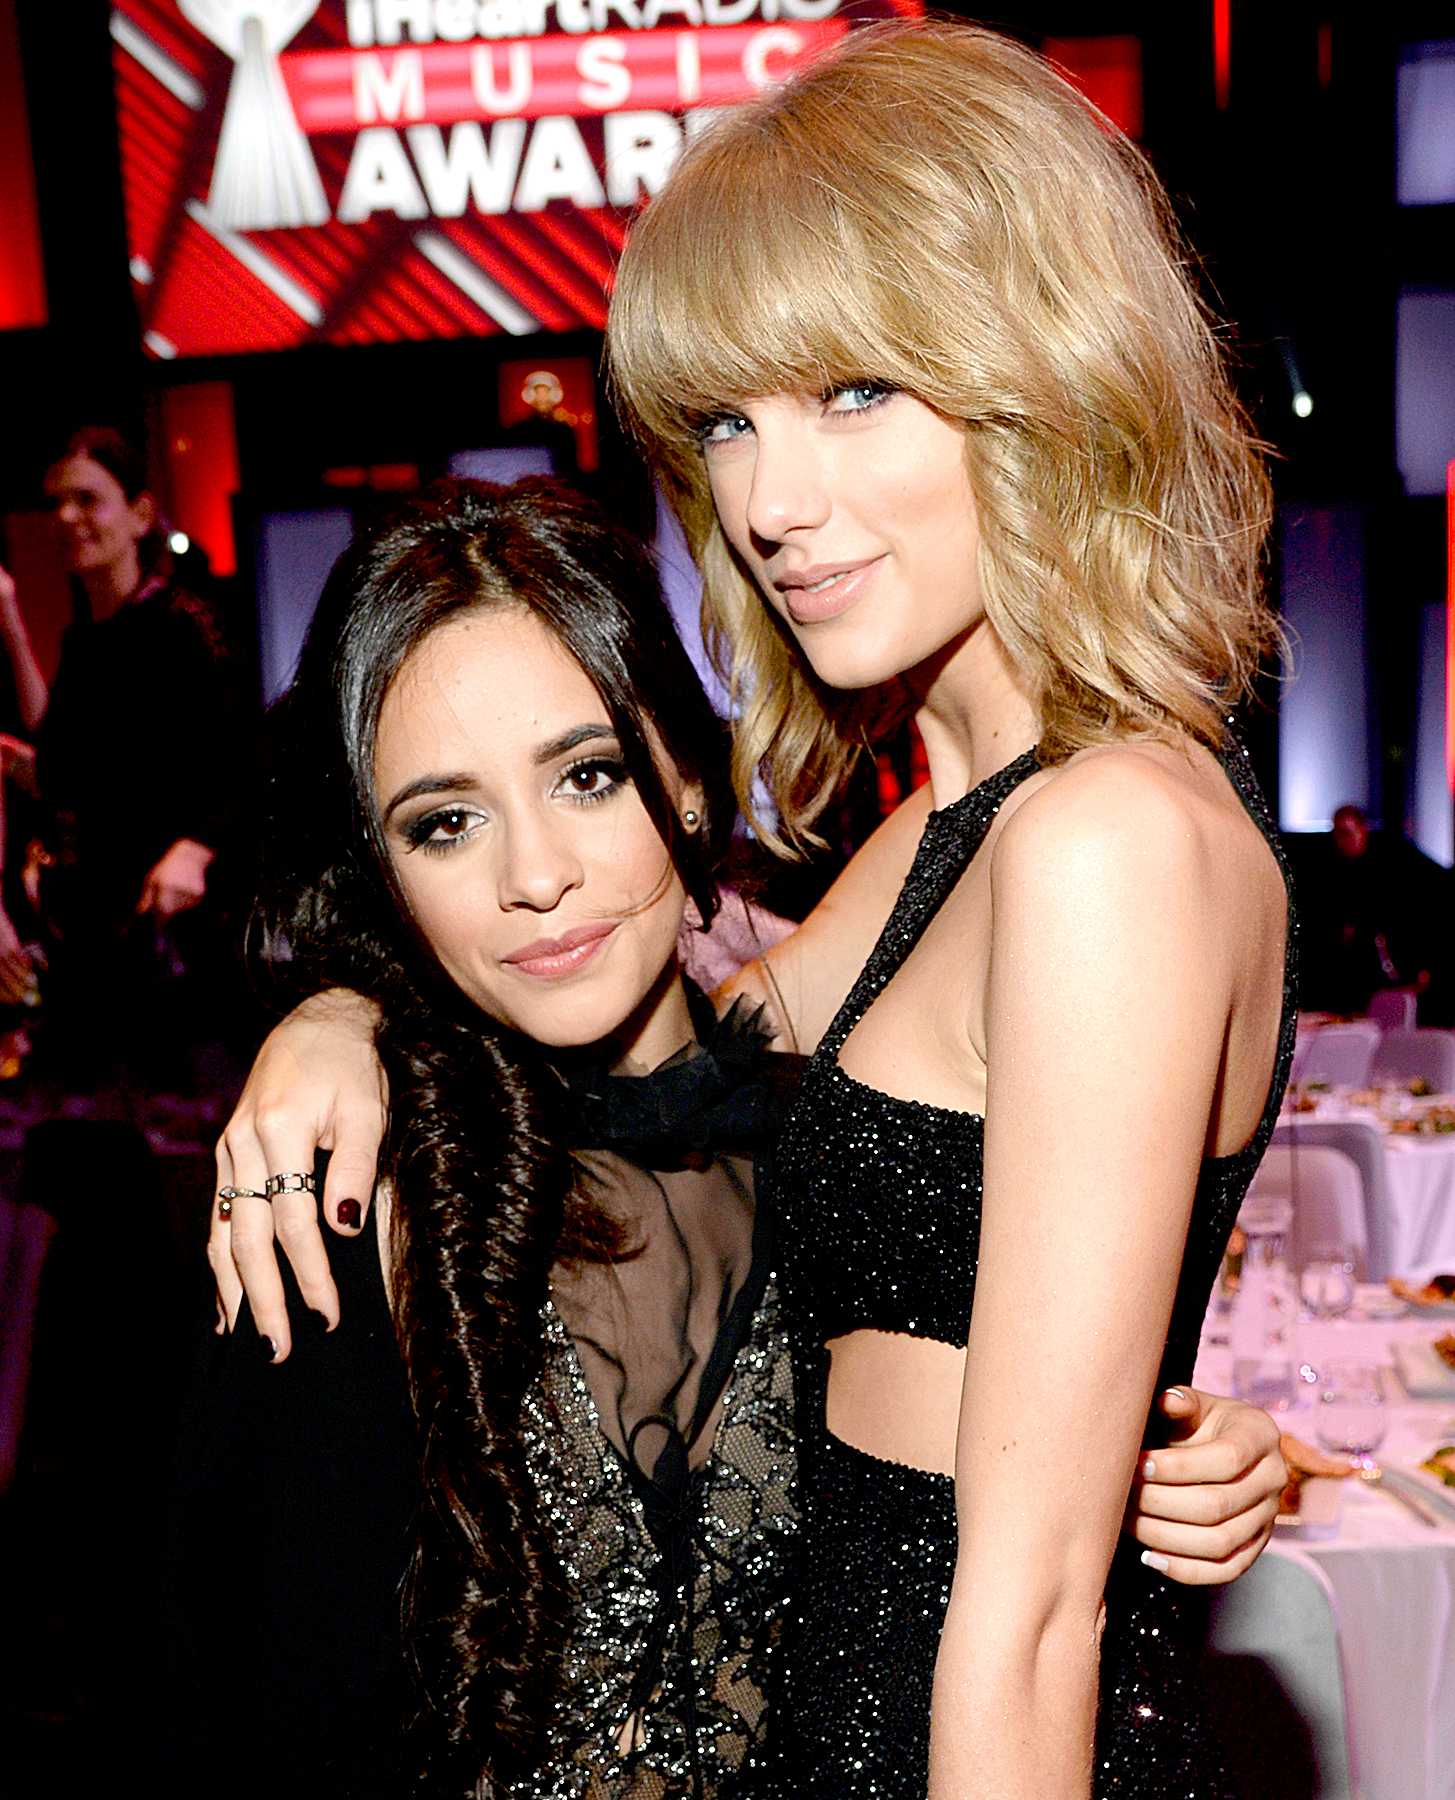 Camila Cabello Denies Rumors Taylor Swift Persuaded Her To Leave Fifth Harmony